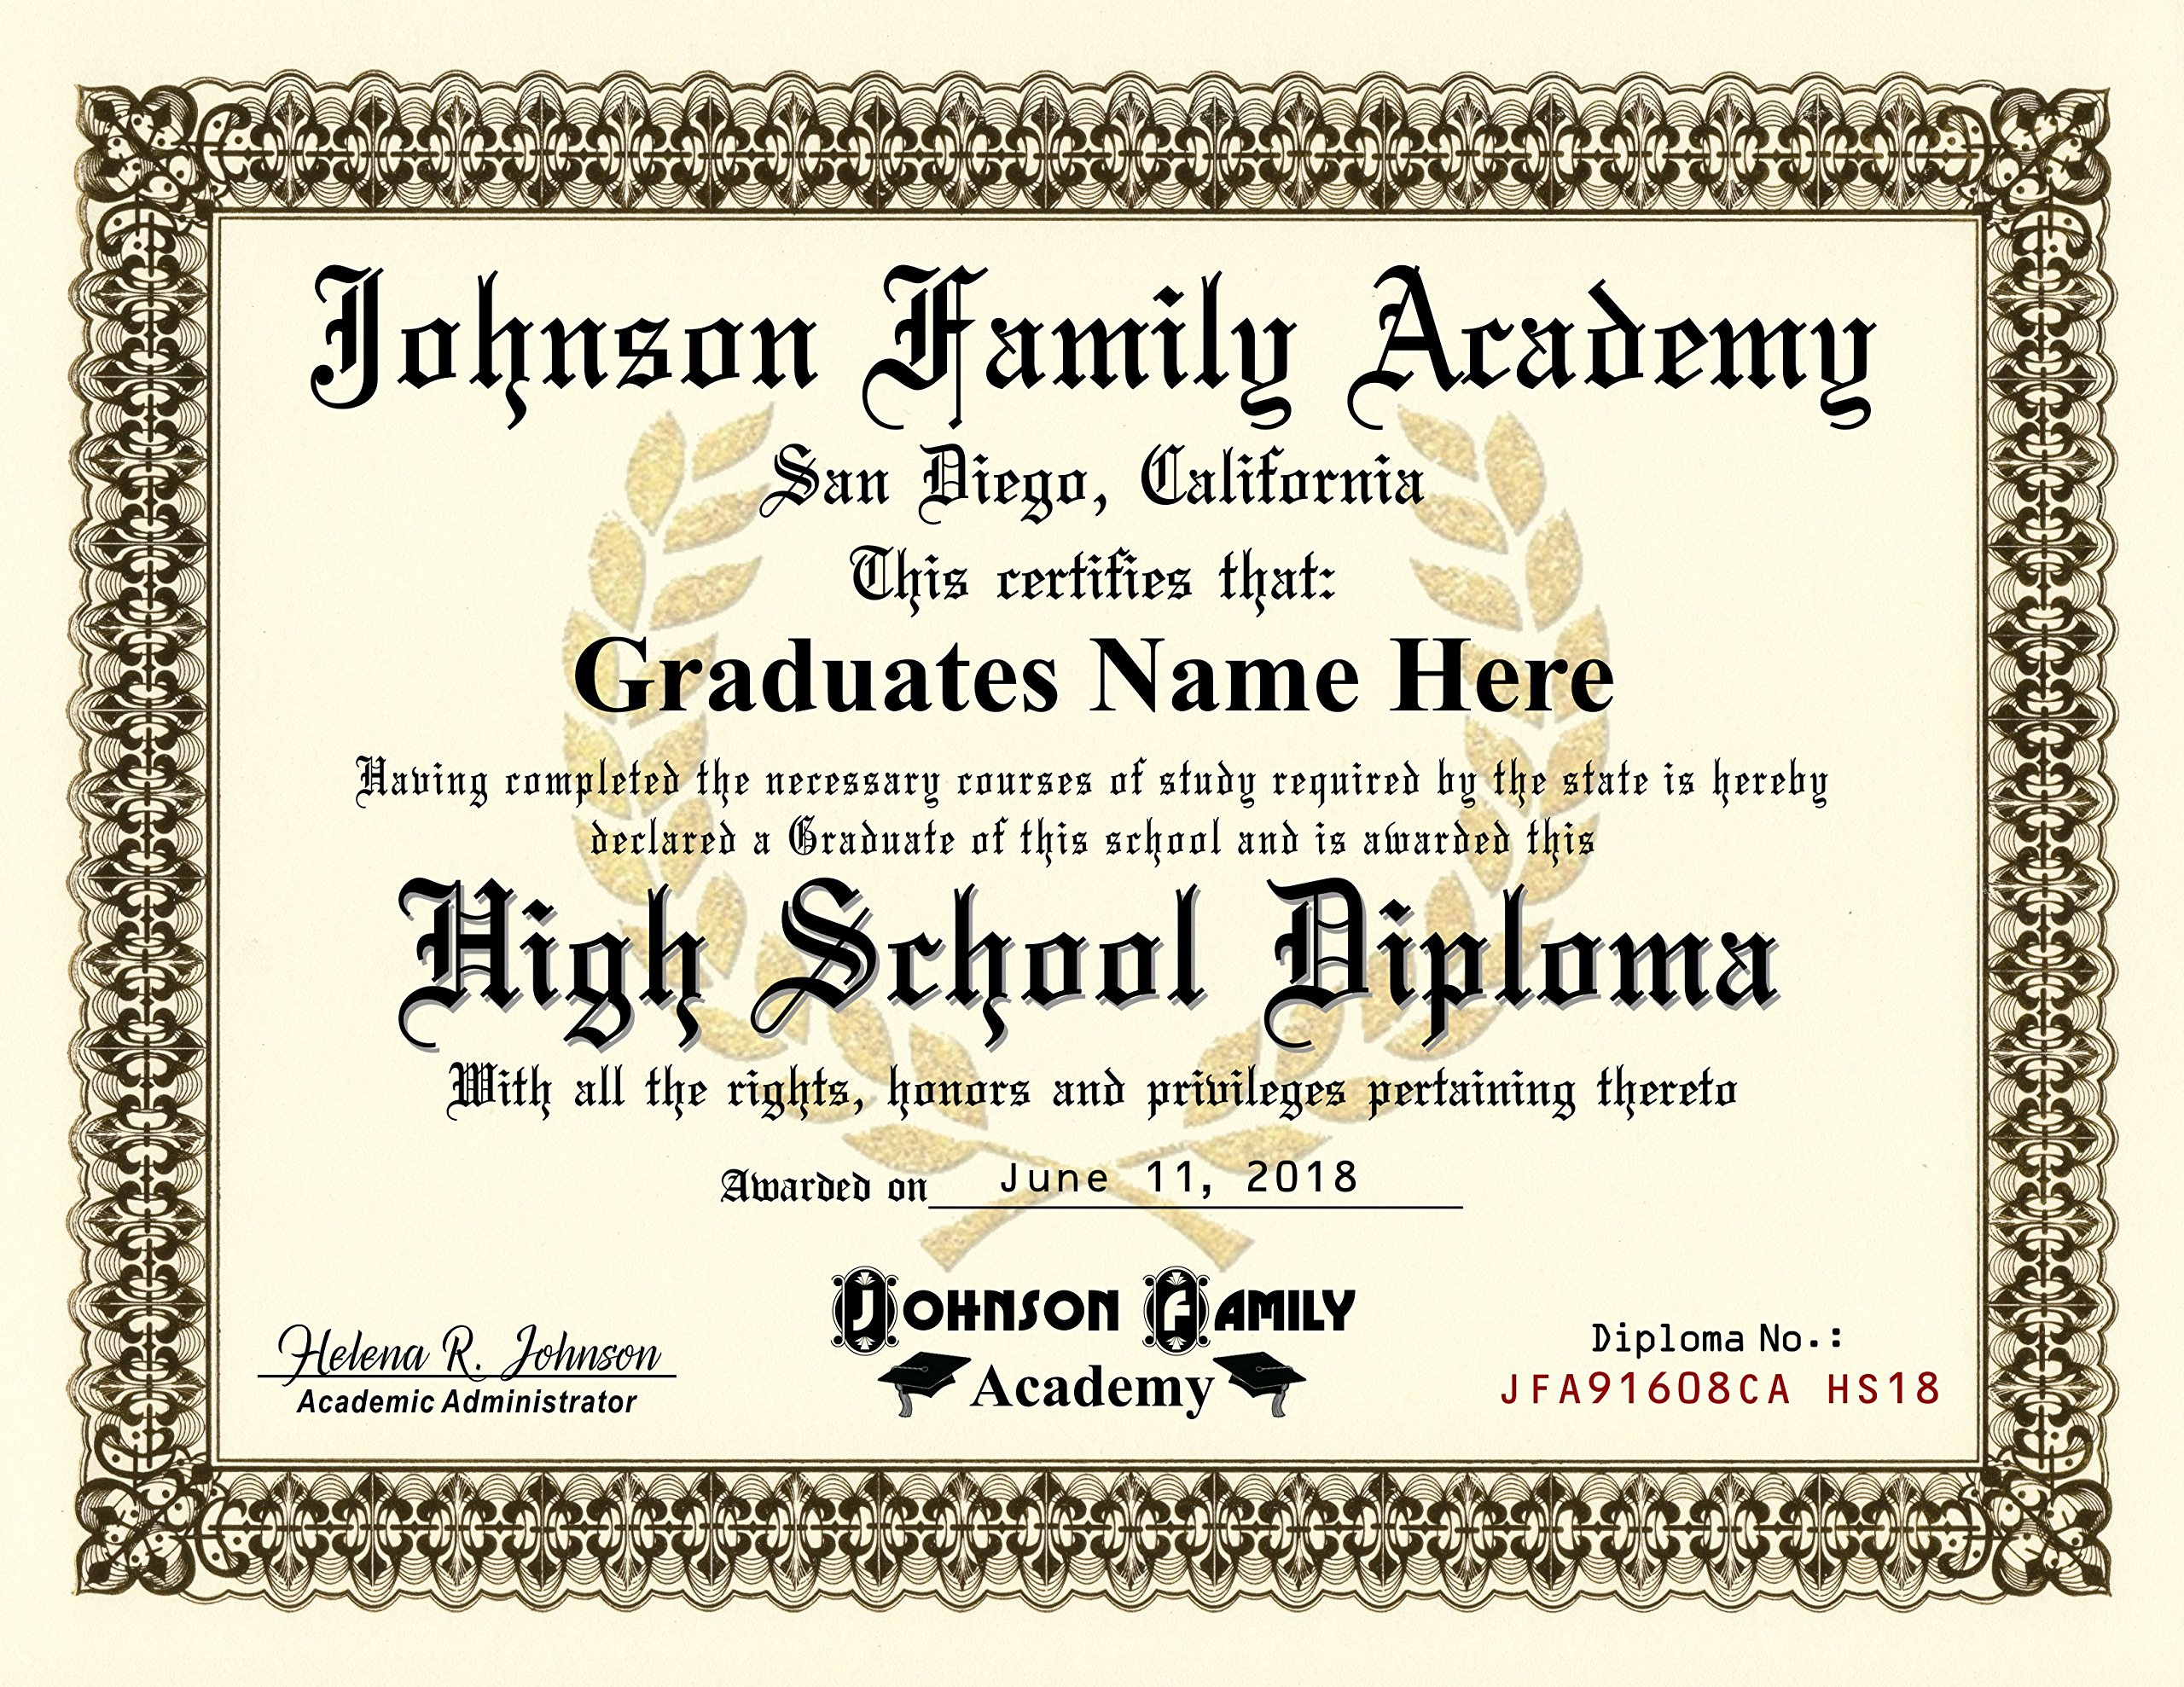 Homeschool Diploma - Highschool Diploma - FREE CUSTOMIZATION - 8.5 by 11 inches Premium Quality